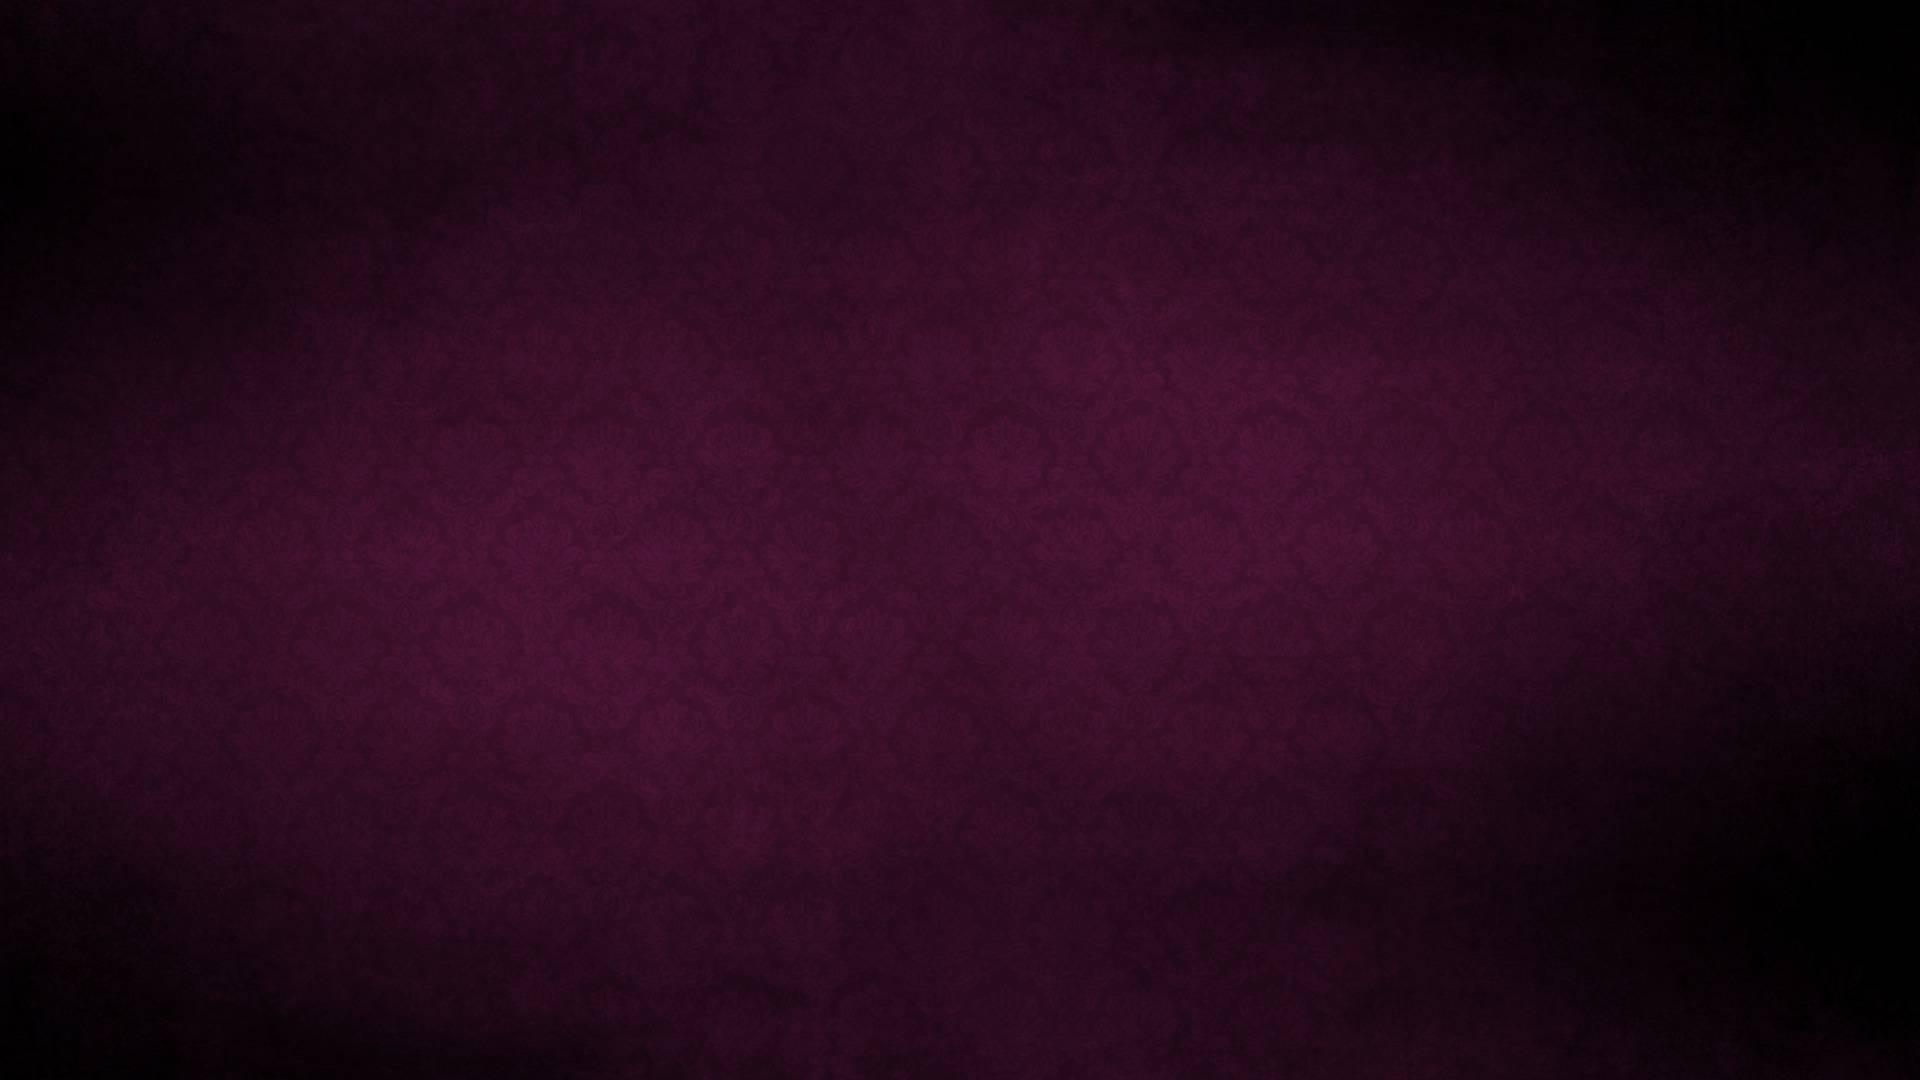 Wallpaper Love Violet : Violet colour Wallpaper - Wallpaper, High Definition, High Quality, Widescreen